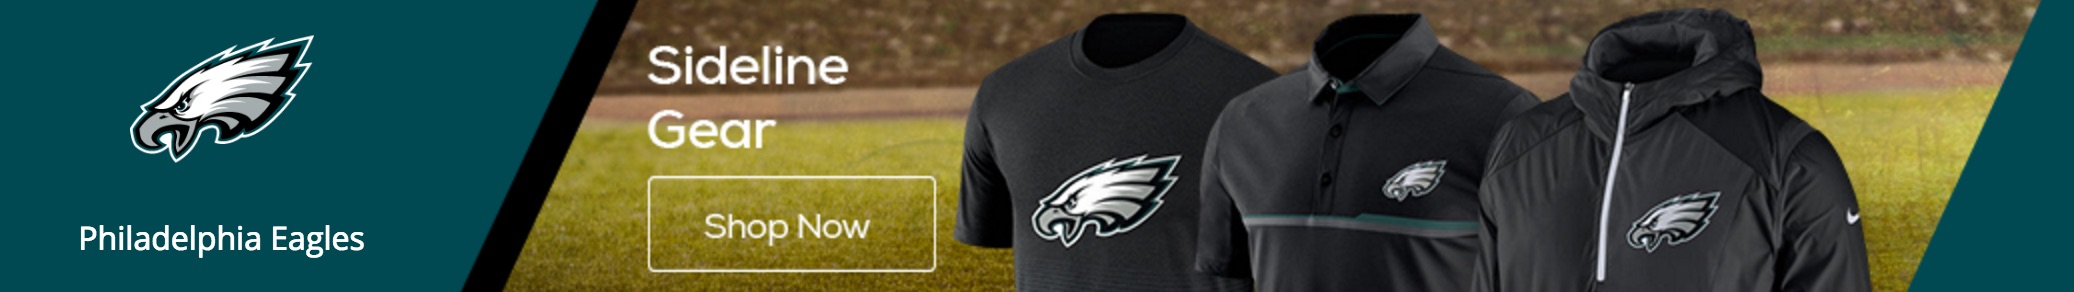 Shop Philadelphia Eagles apparel at the TrueSportsMovies Fan Store.